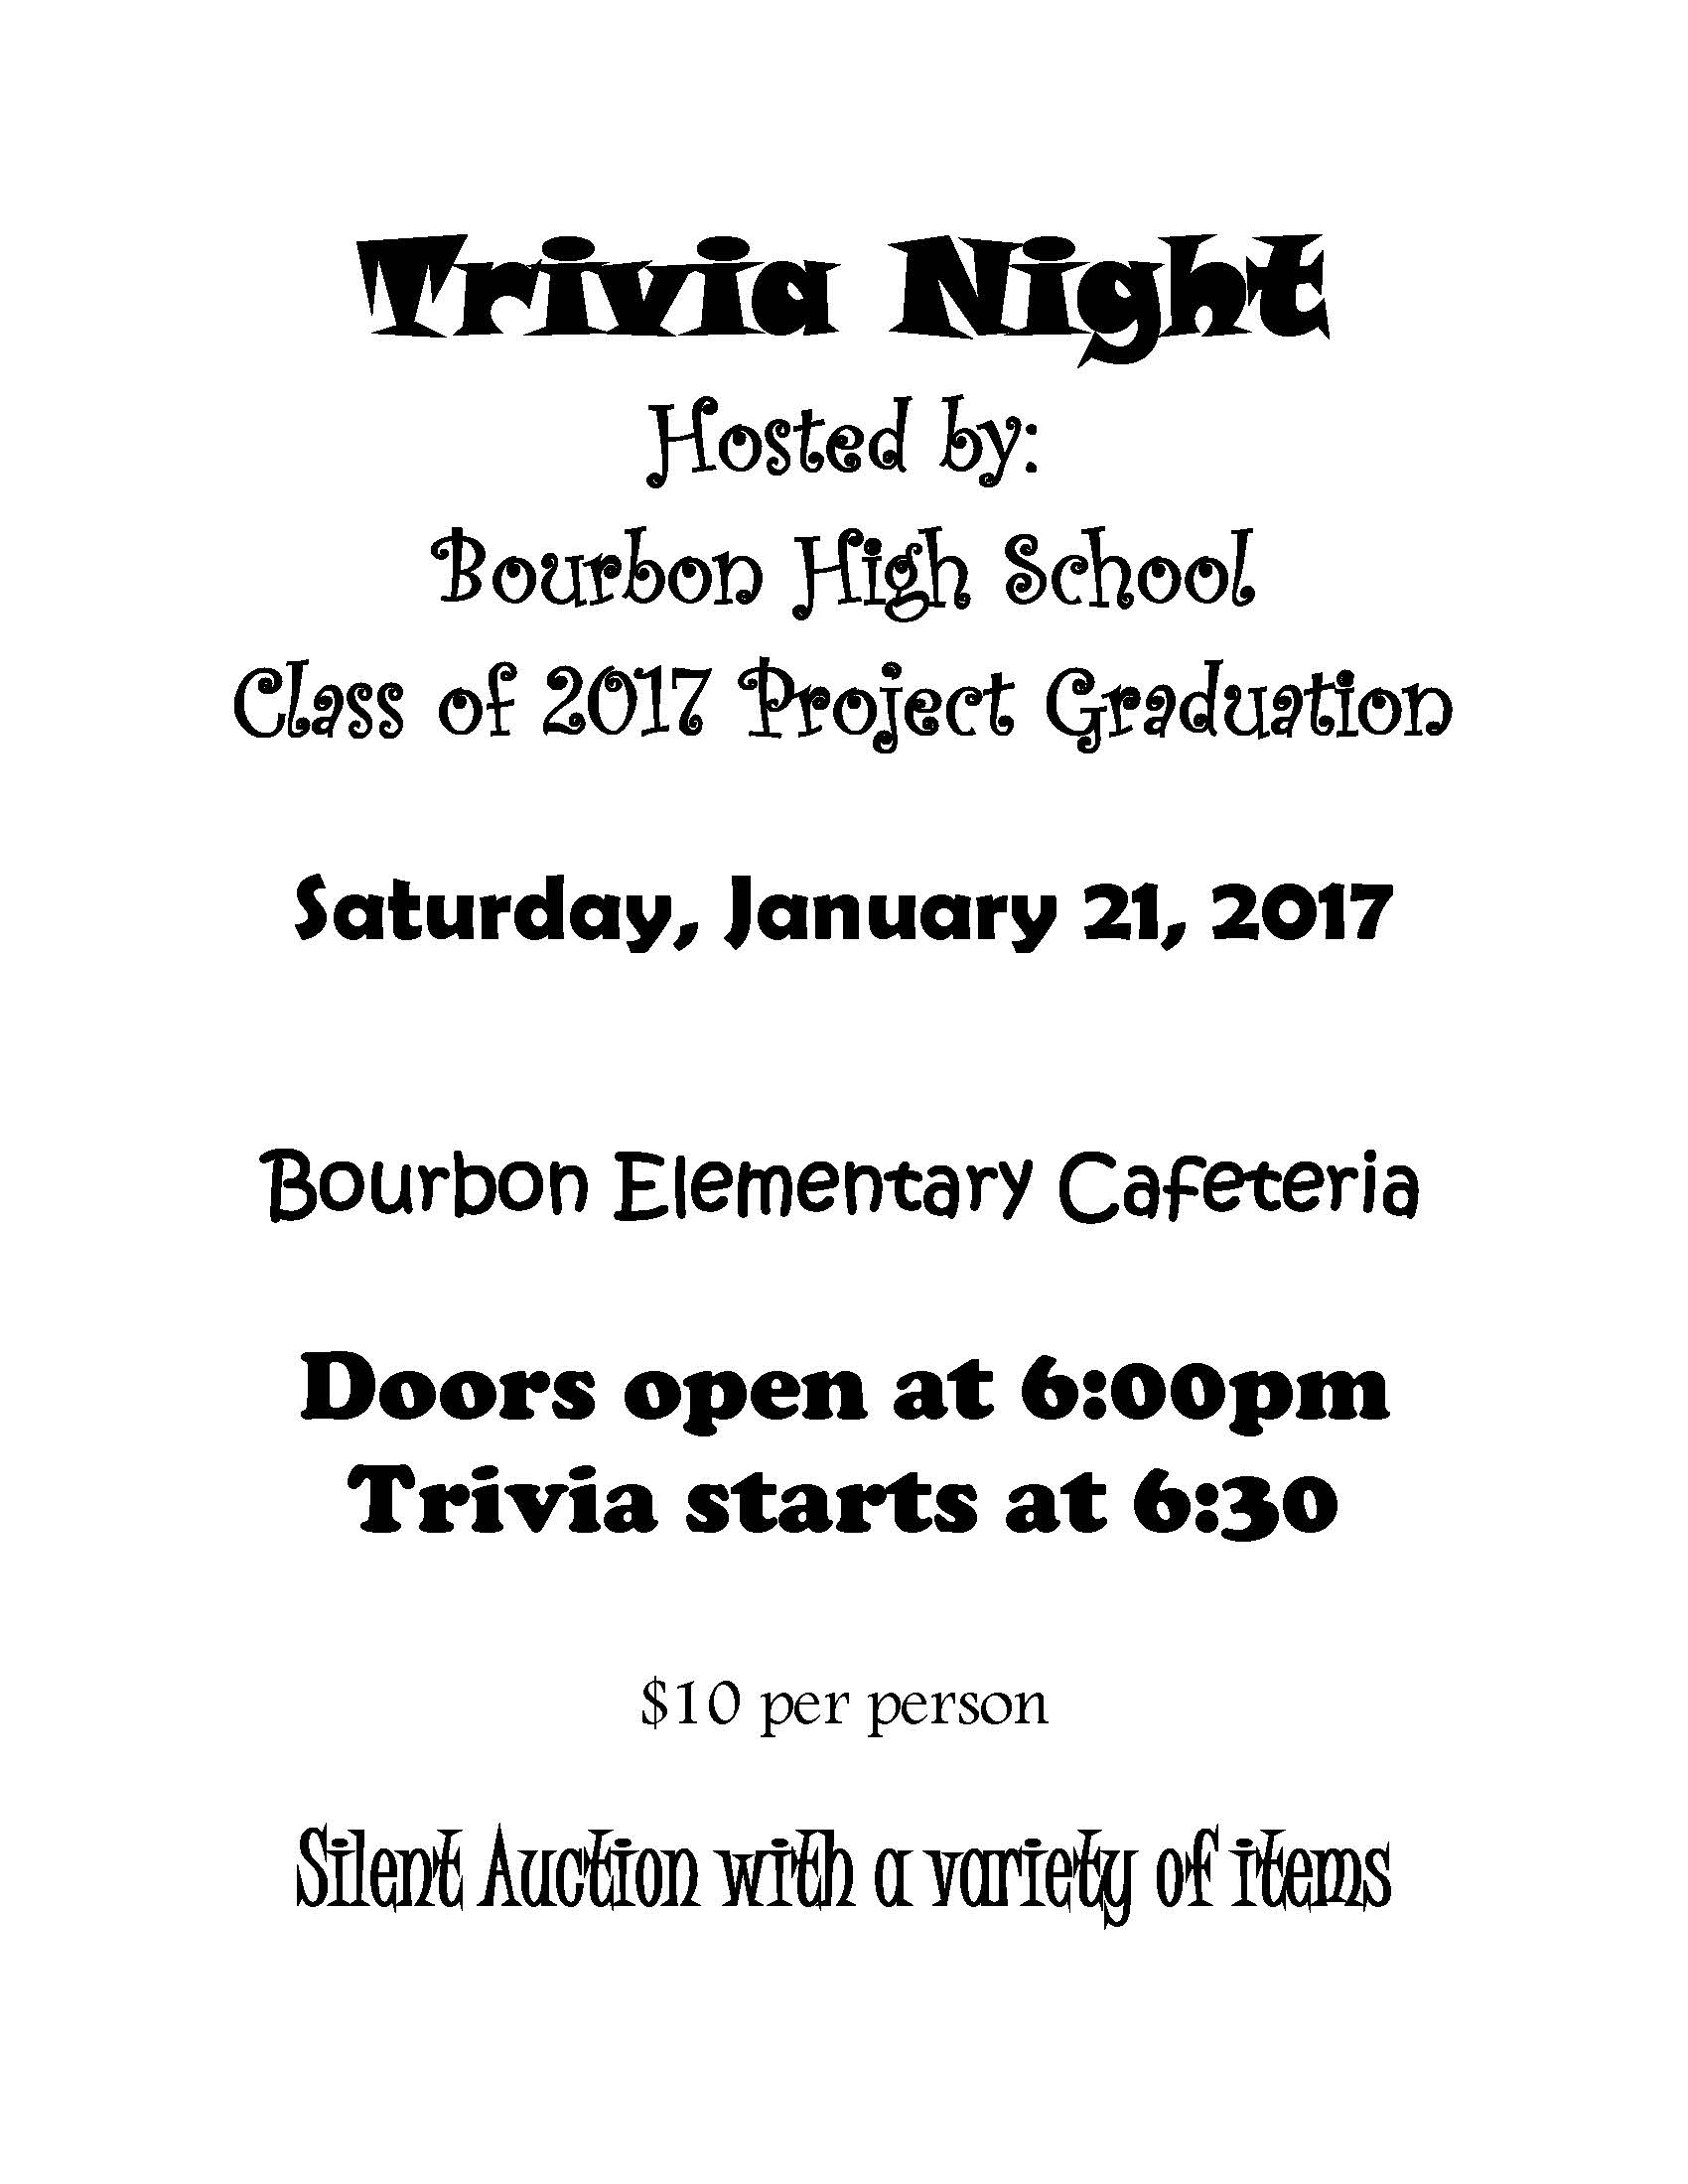 BHS Project Graduation Trivia Night